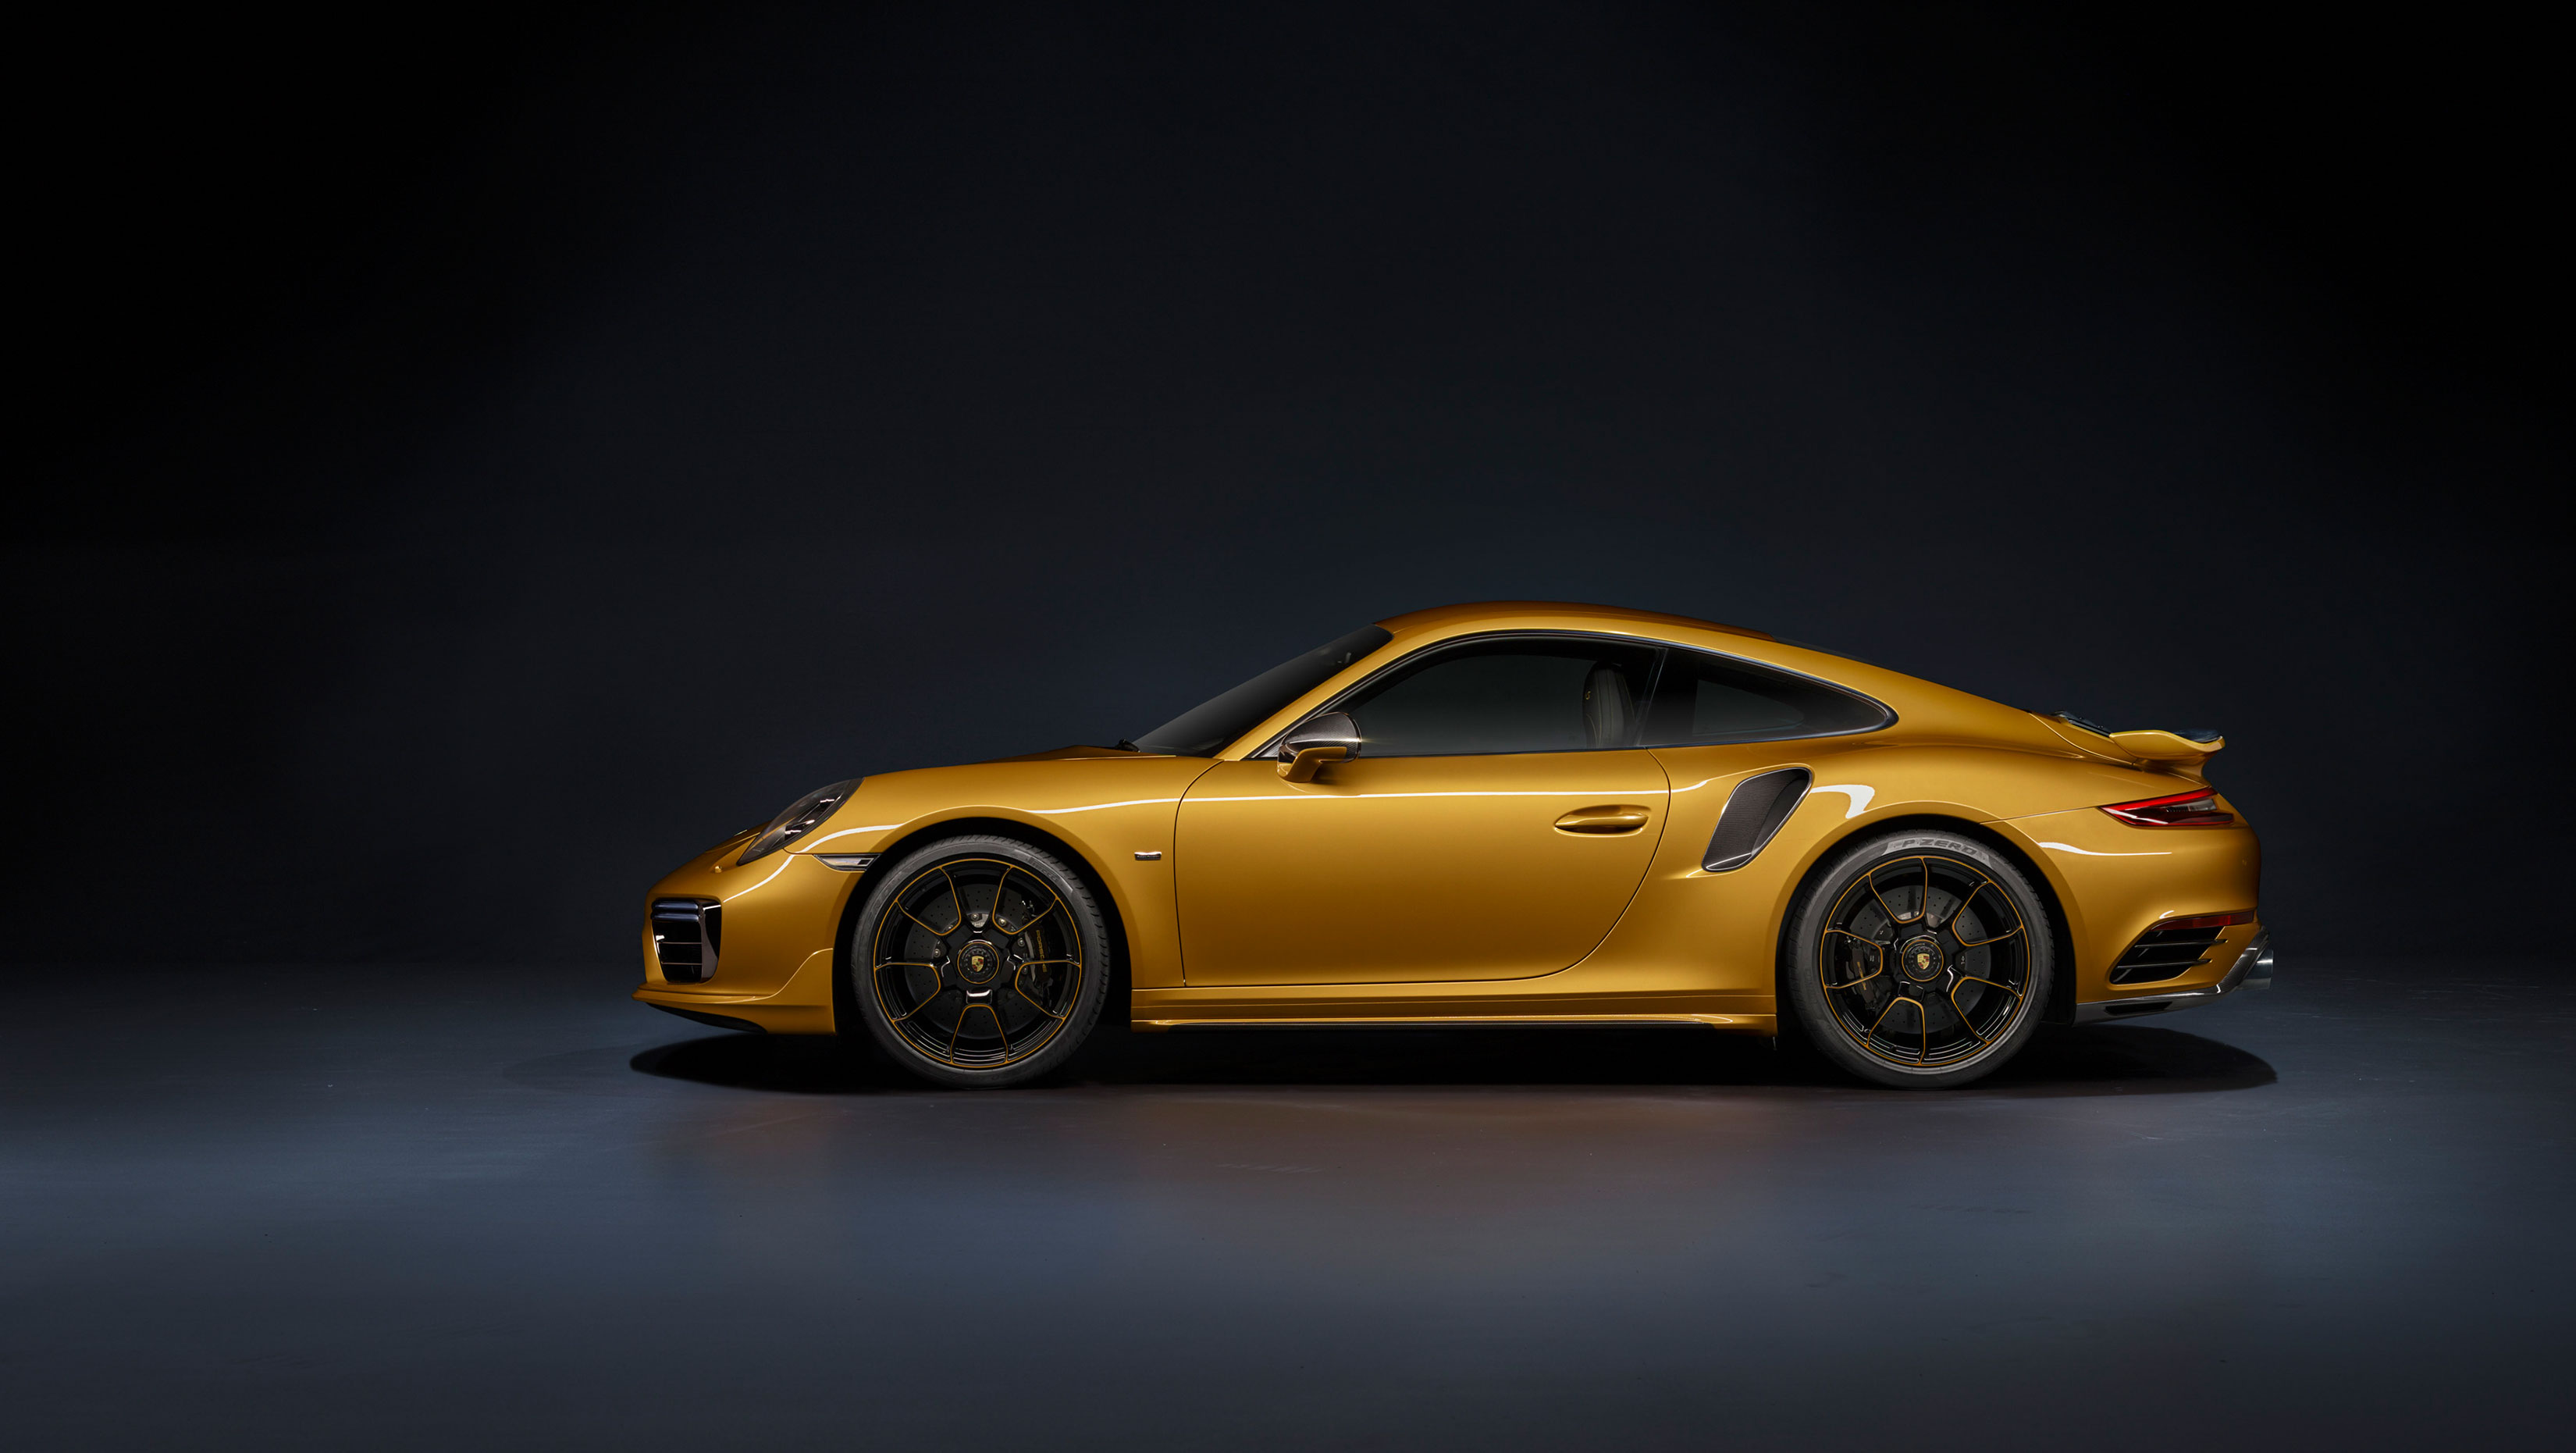 Porsche 911 Turbo S Exclusive Series The Car The Watch